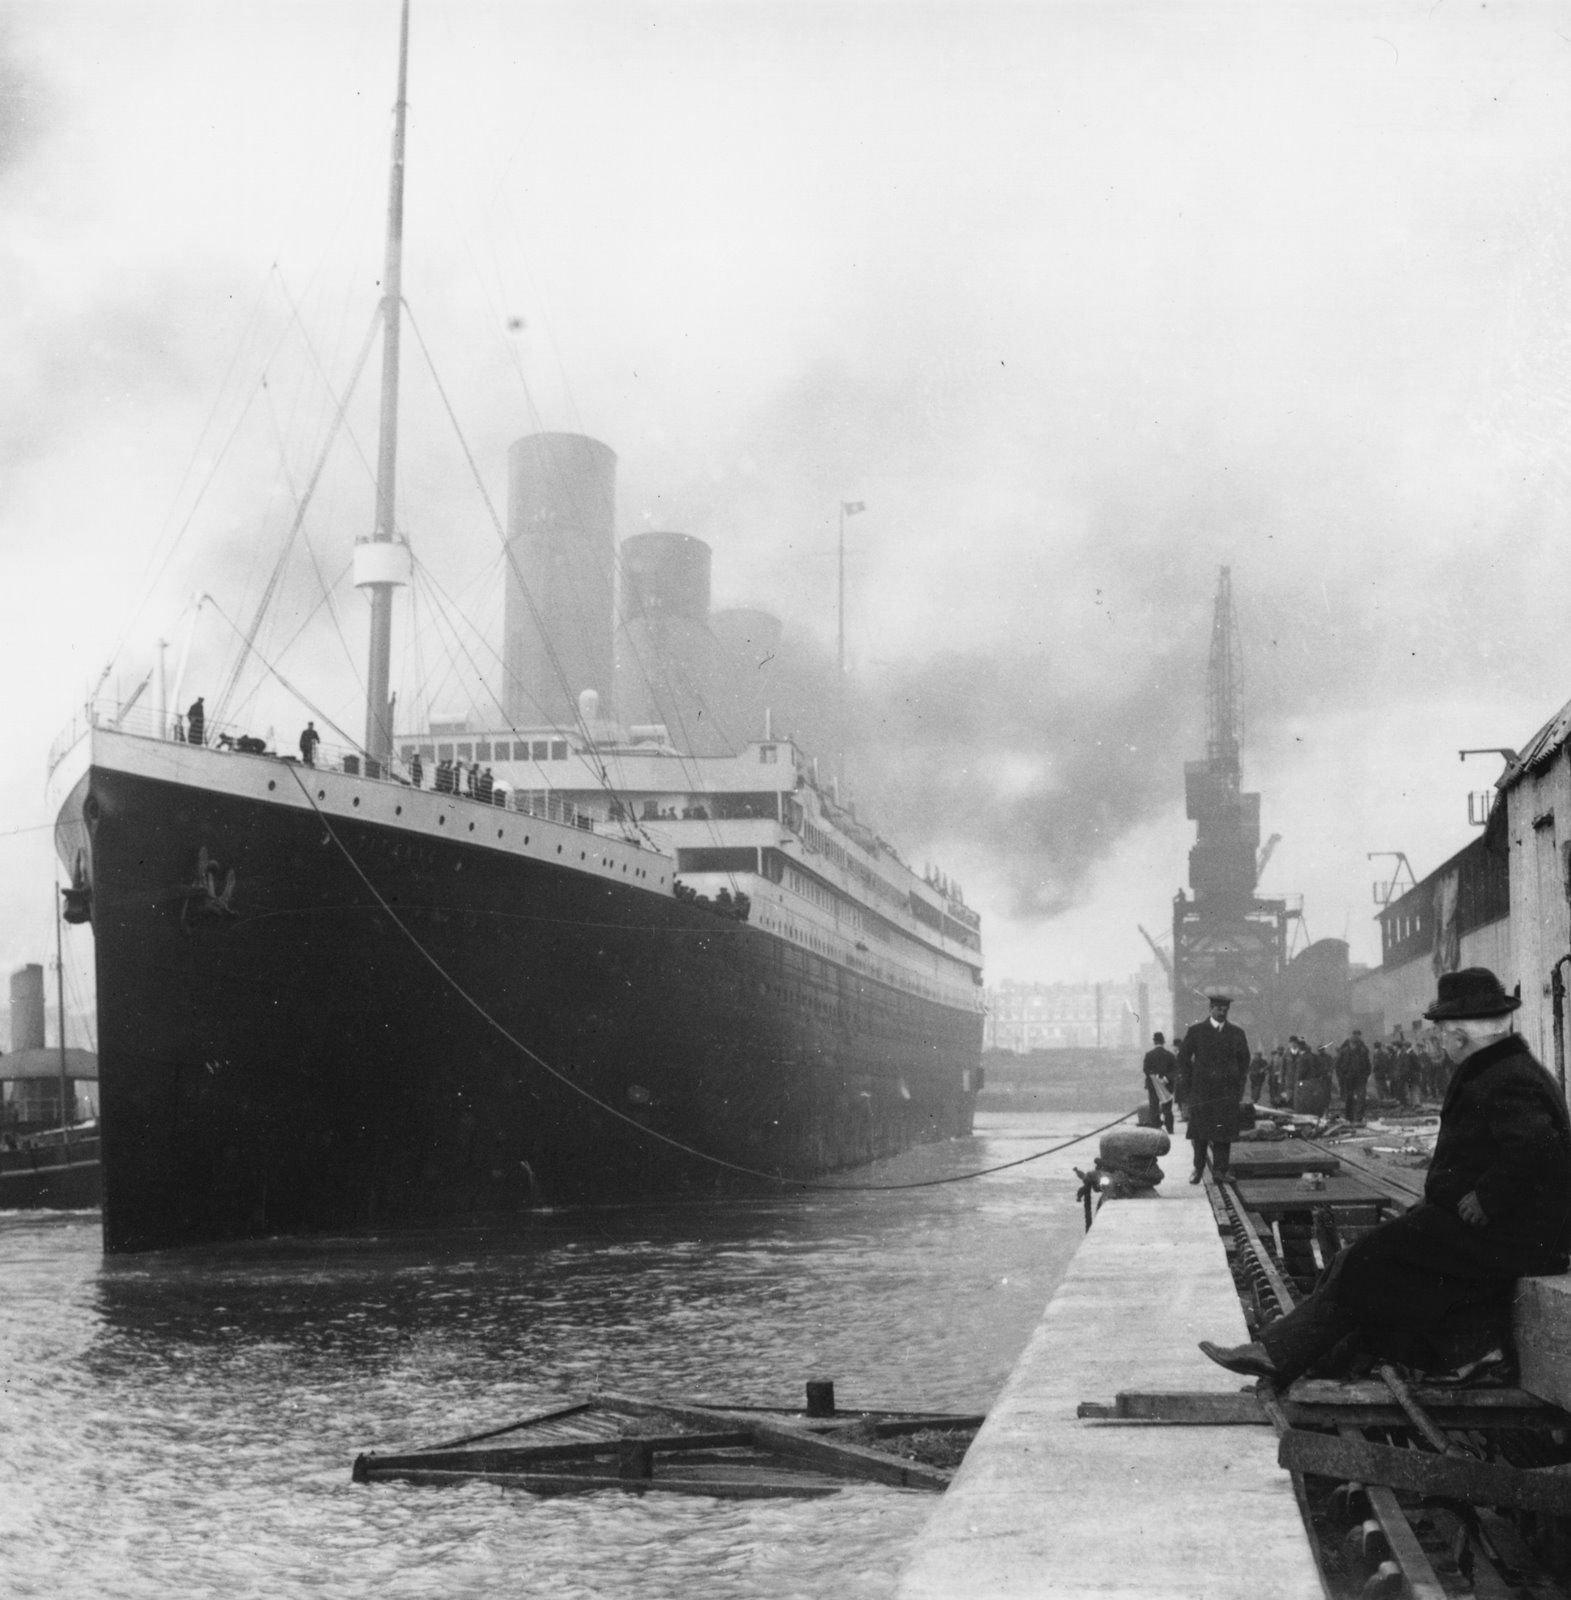 Titanic 99th anniversary 10 Things You Might Not Know About Titanic – ( 99th Anniversary )